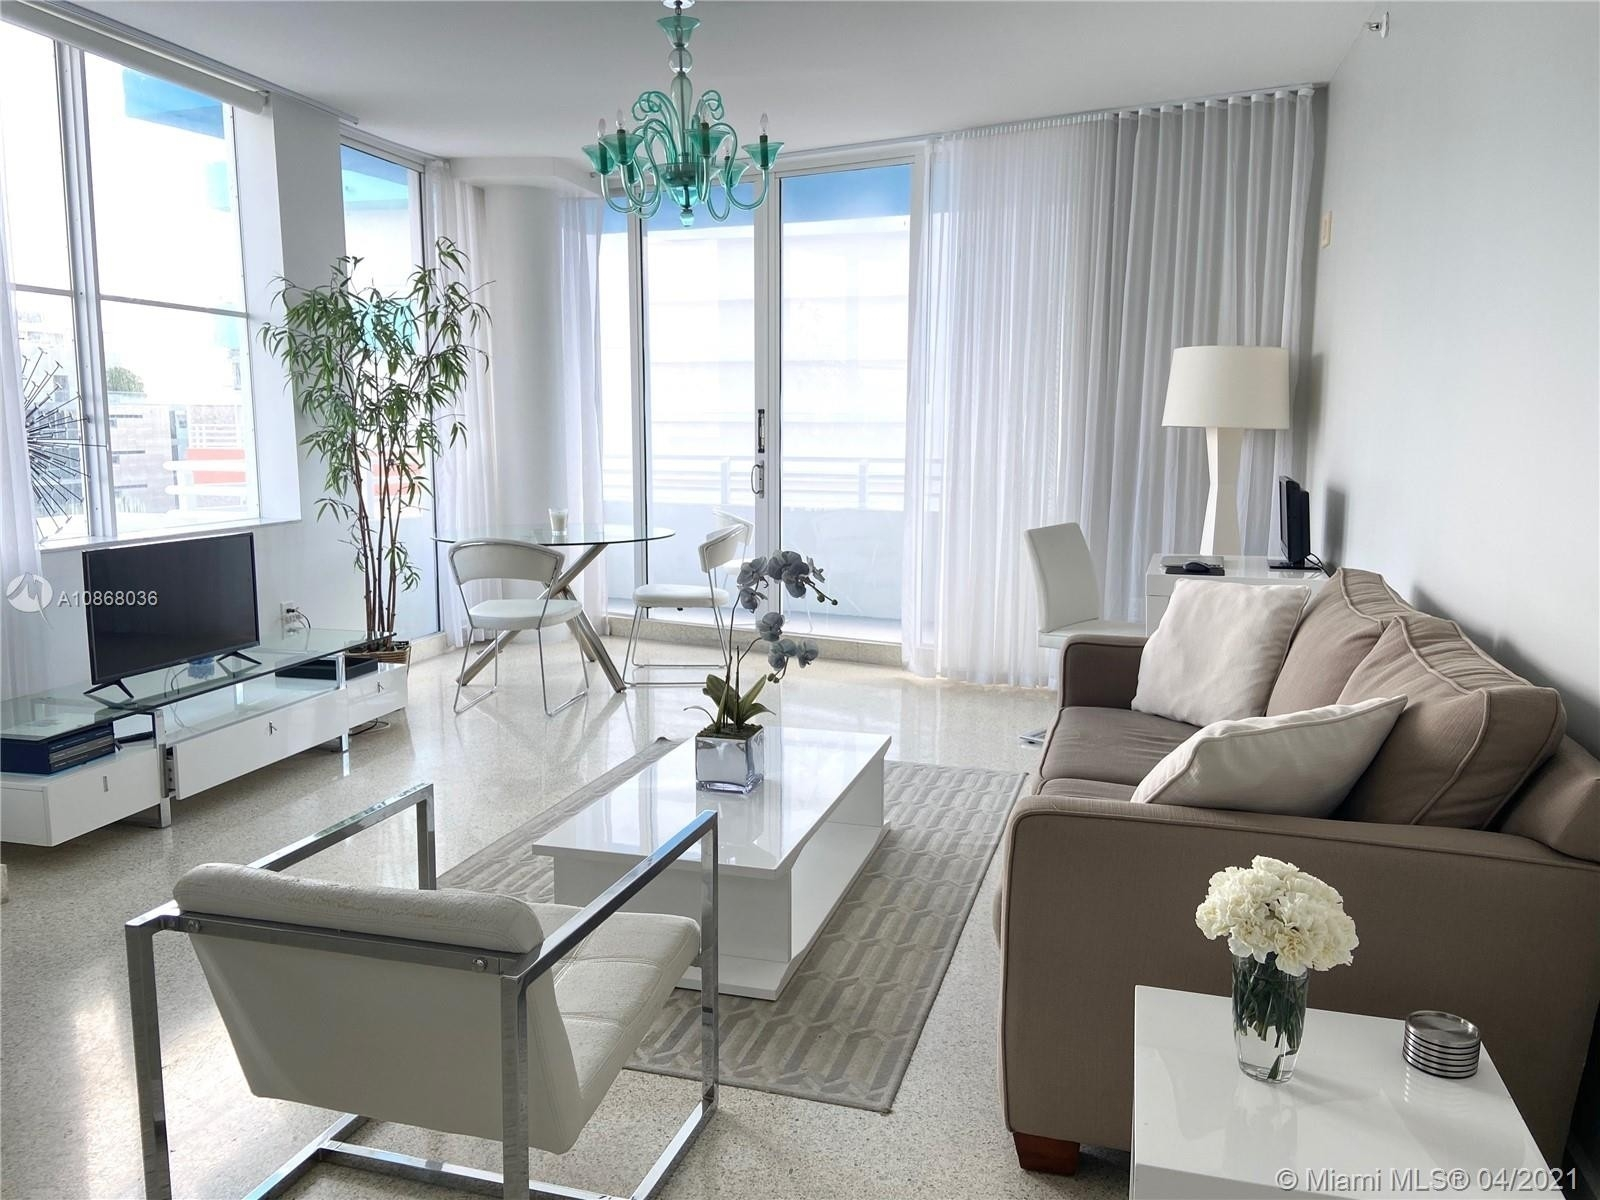 Condominium for Sale at 225 Collins Ave , 6L SoFi, Miami Beach, FL 33139